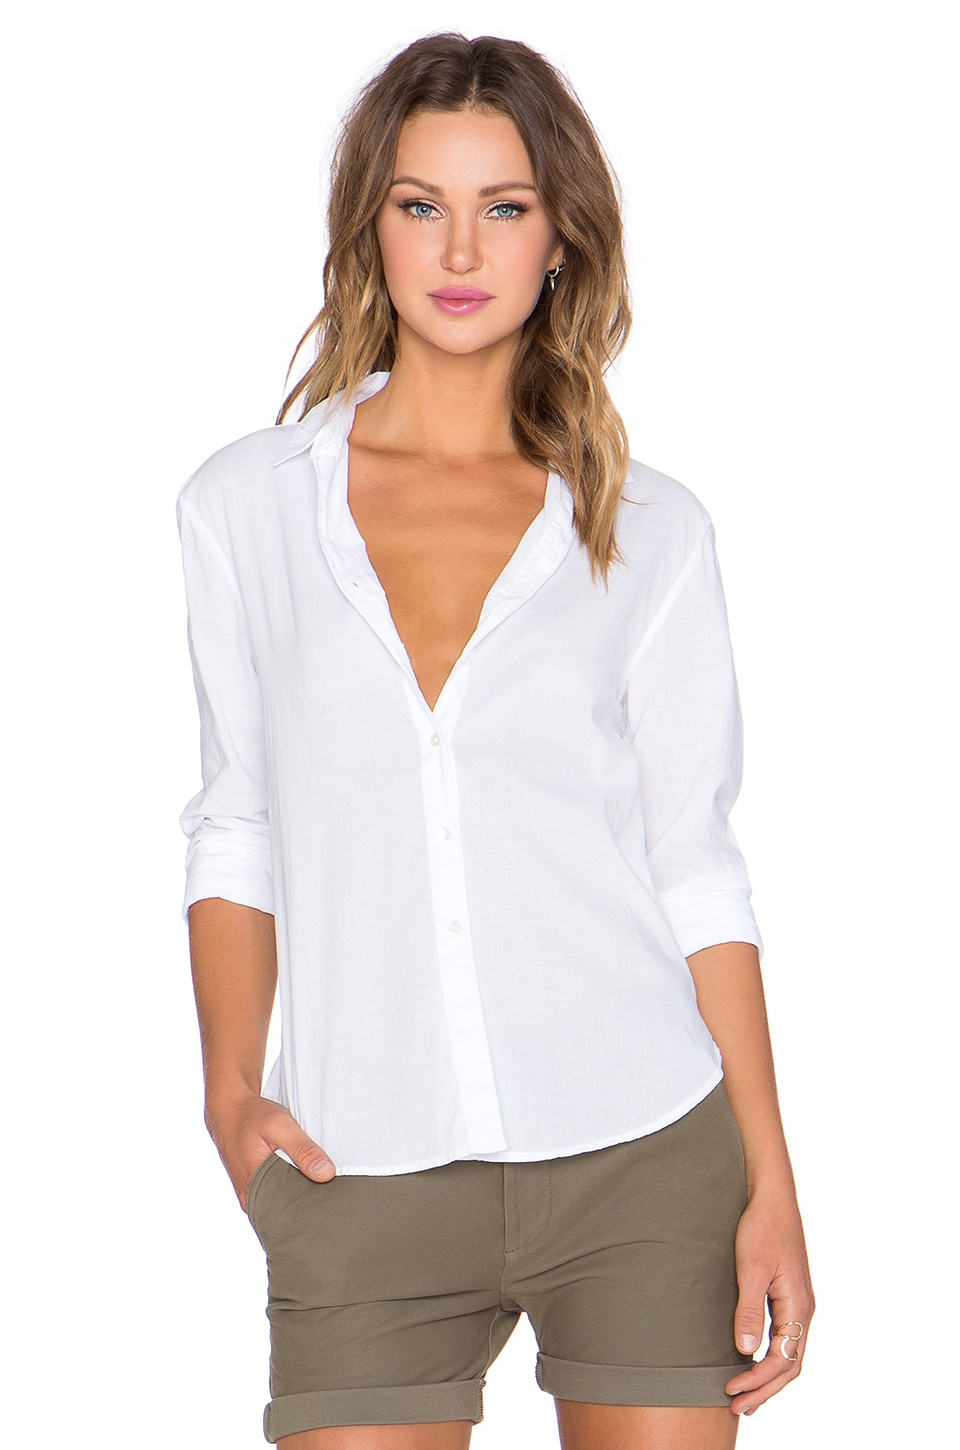 James Perse Classic Button Up in White